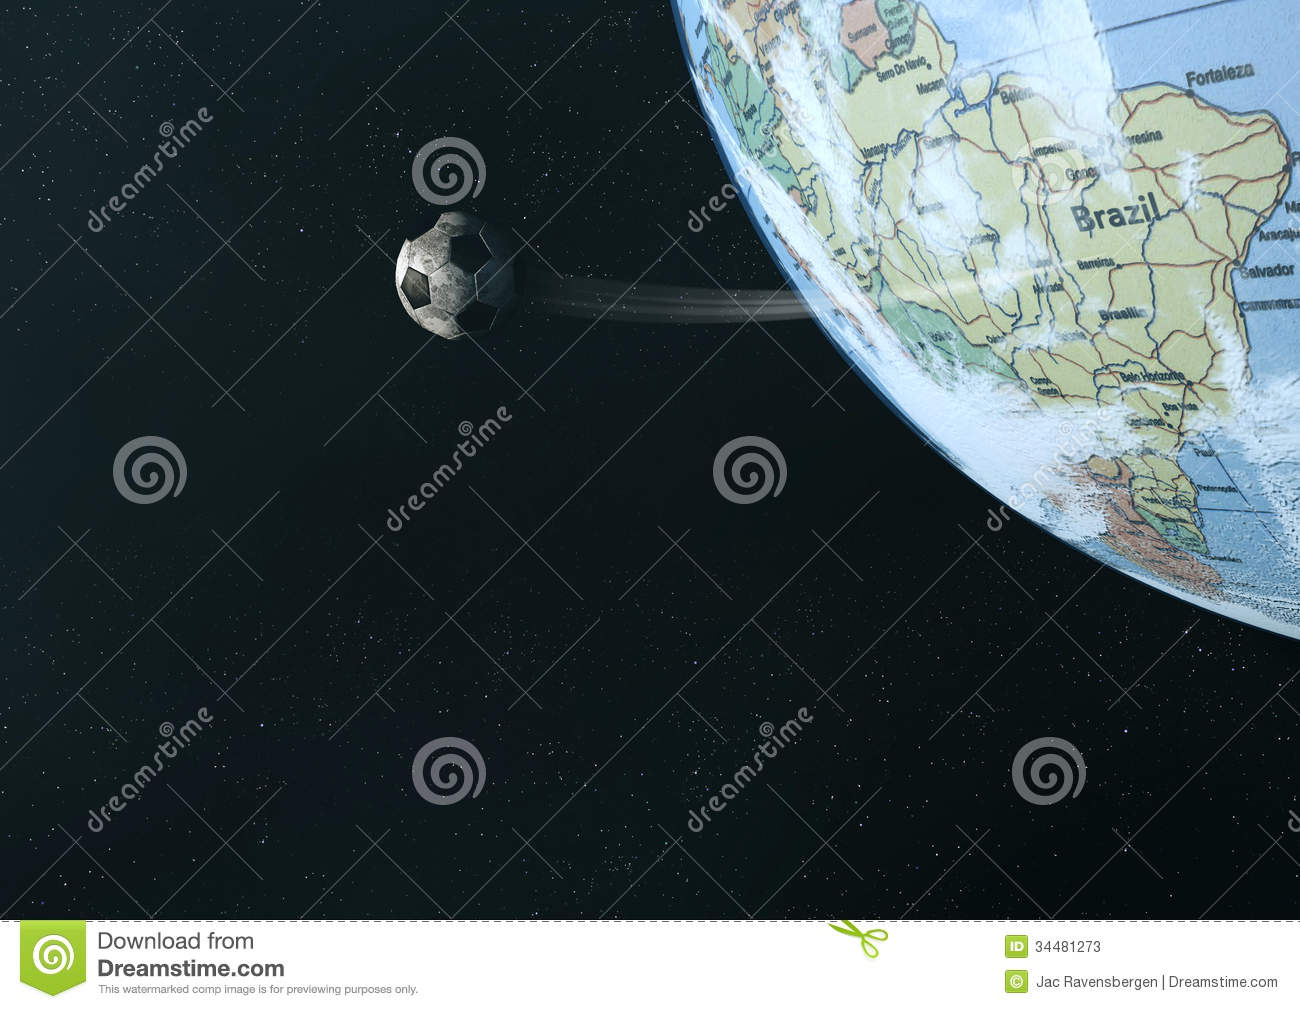 spacecraft circling earth - photo #15